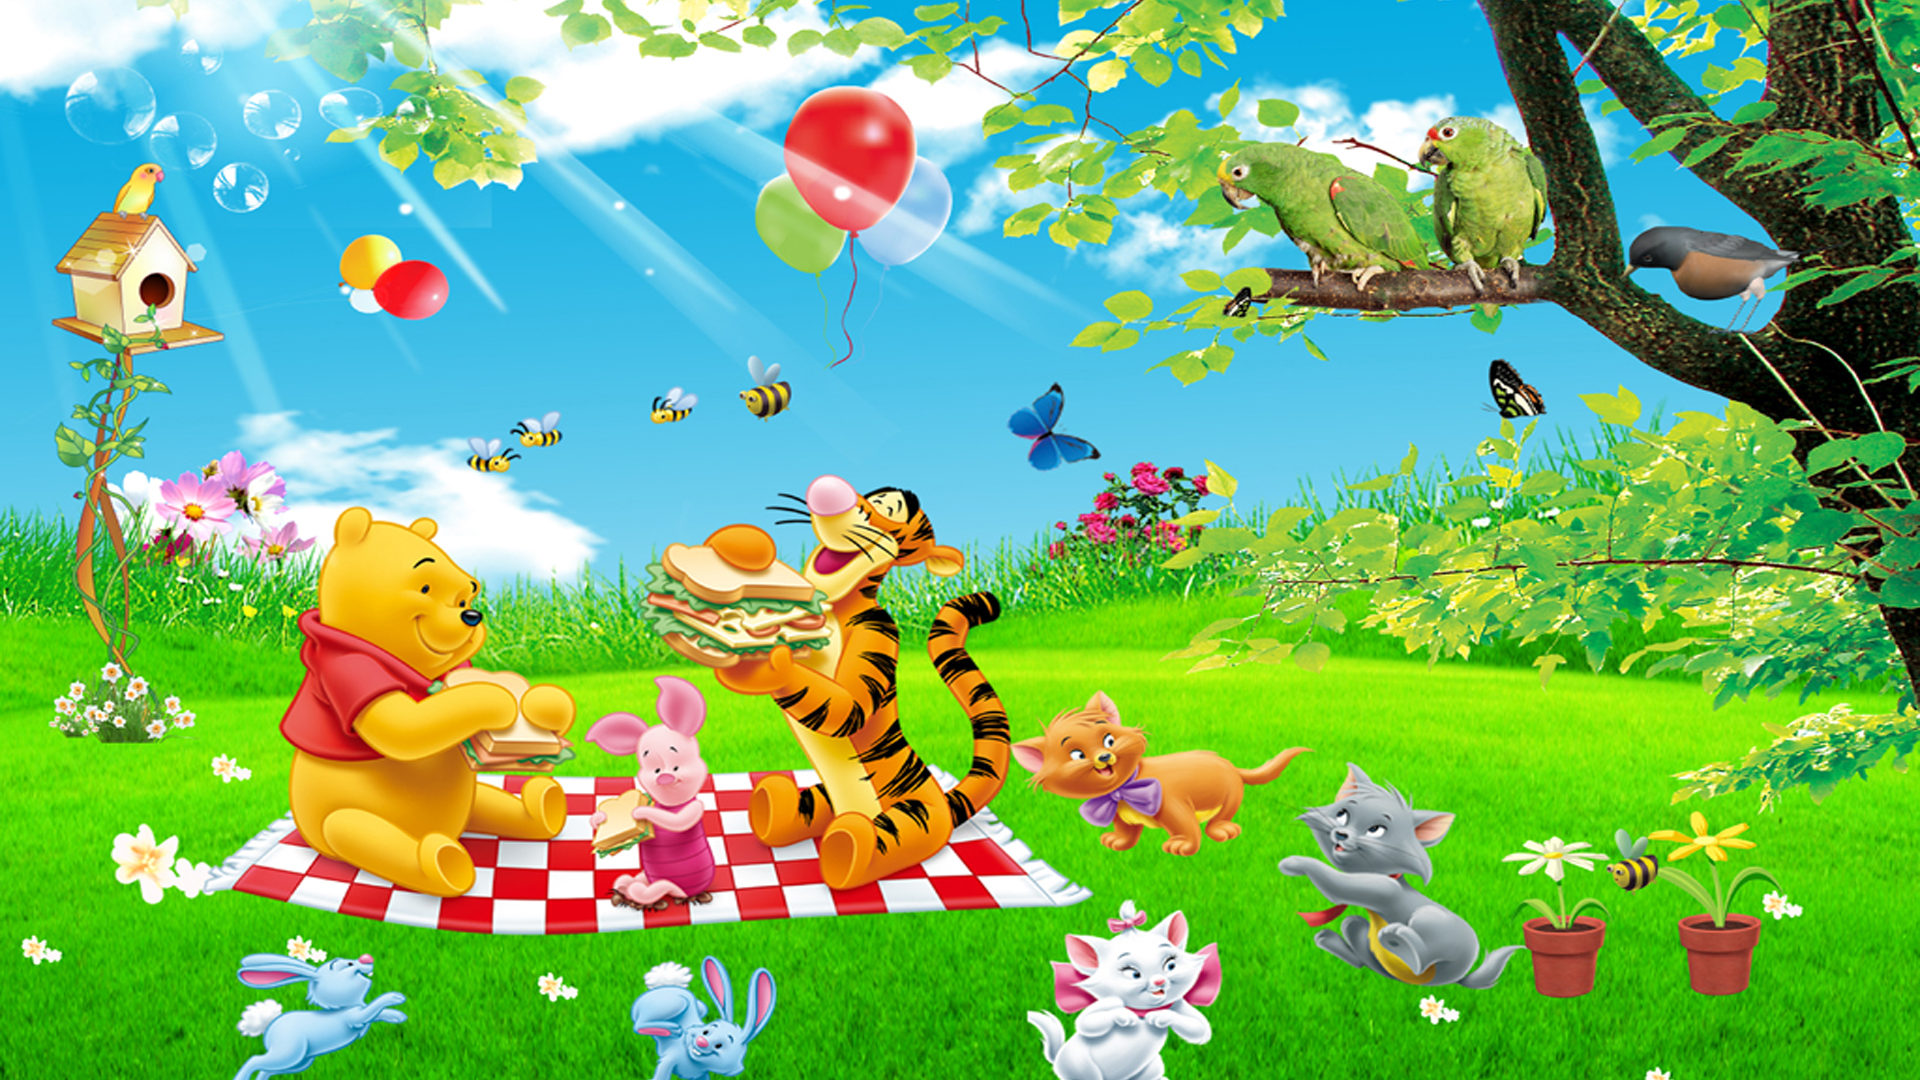 Cute Wallpapers Toast Cartoon Tigger Piglet And Winnie The Pooh Picnic Summer